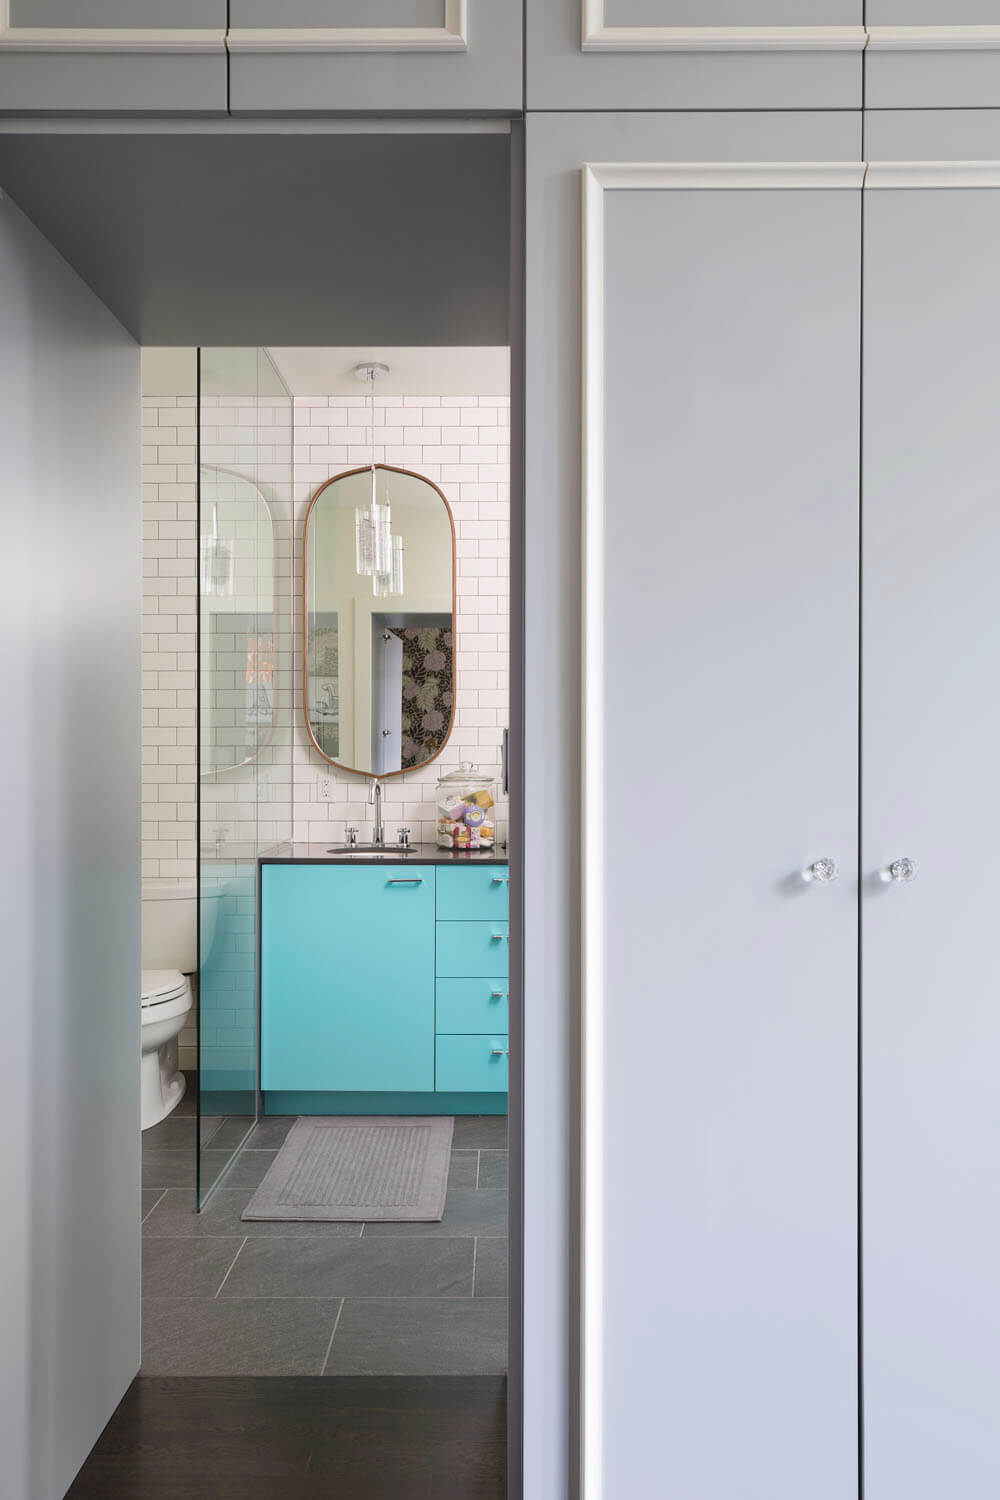 Bright Interior Design Ideas for Private House. Perspective view to the turquoise furniture set in the bathroom